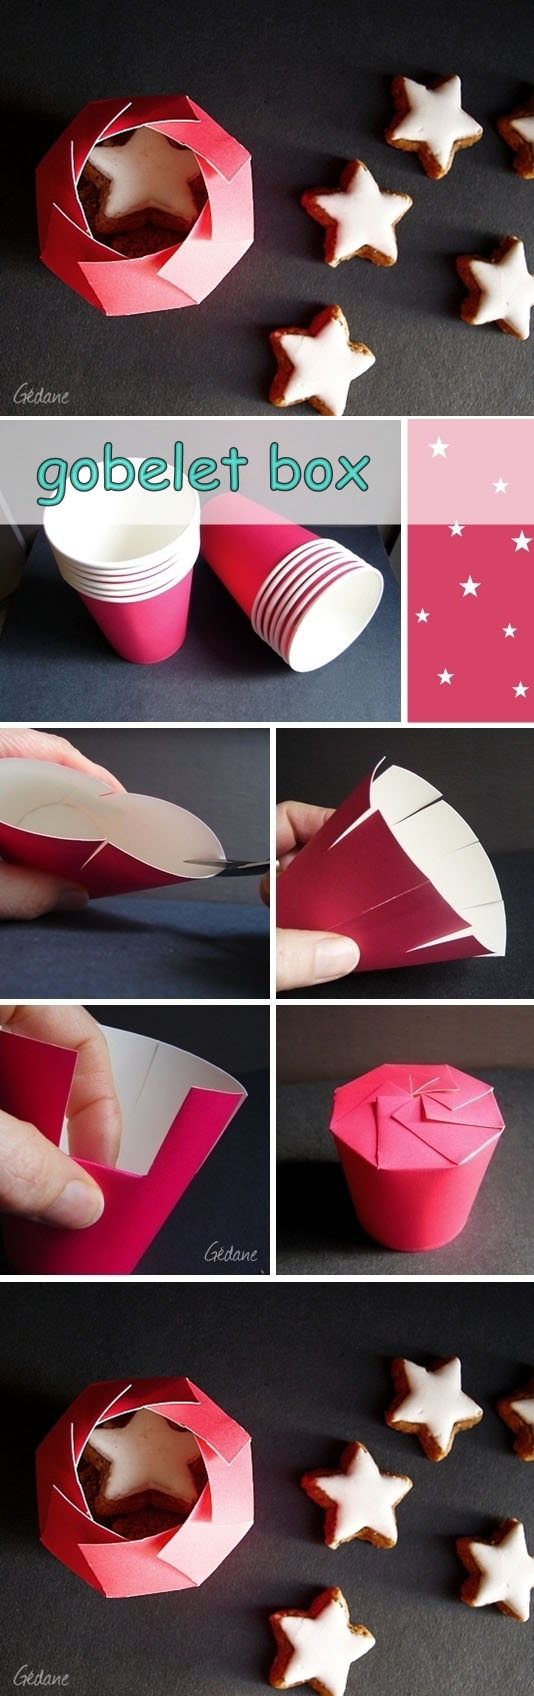 diy-tuto-box-gobelet-en-carton-happy-diy-le-blog-de-gdane-1389325452nkg4811